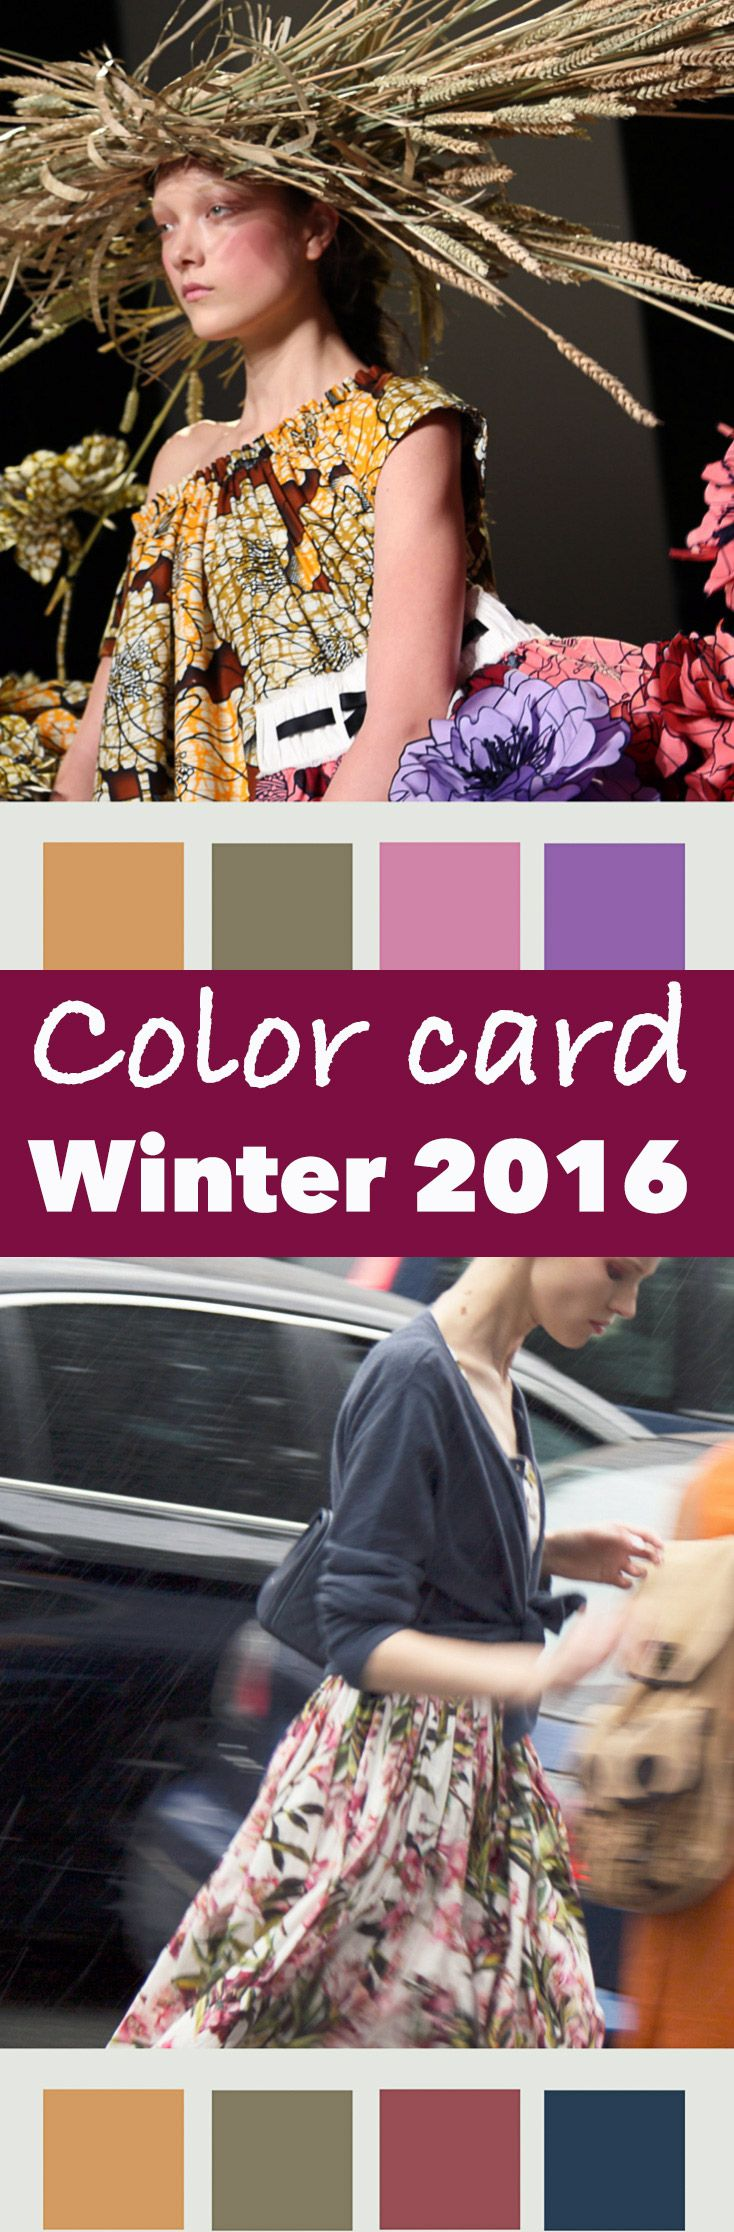 Color-card-fall winter-2016 download direct de grstis colorcard. http://trendbubbles.nl/top-10-modekle…nter-2015-2016/